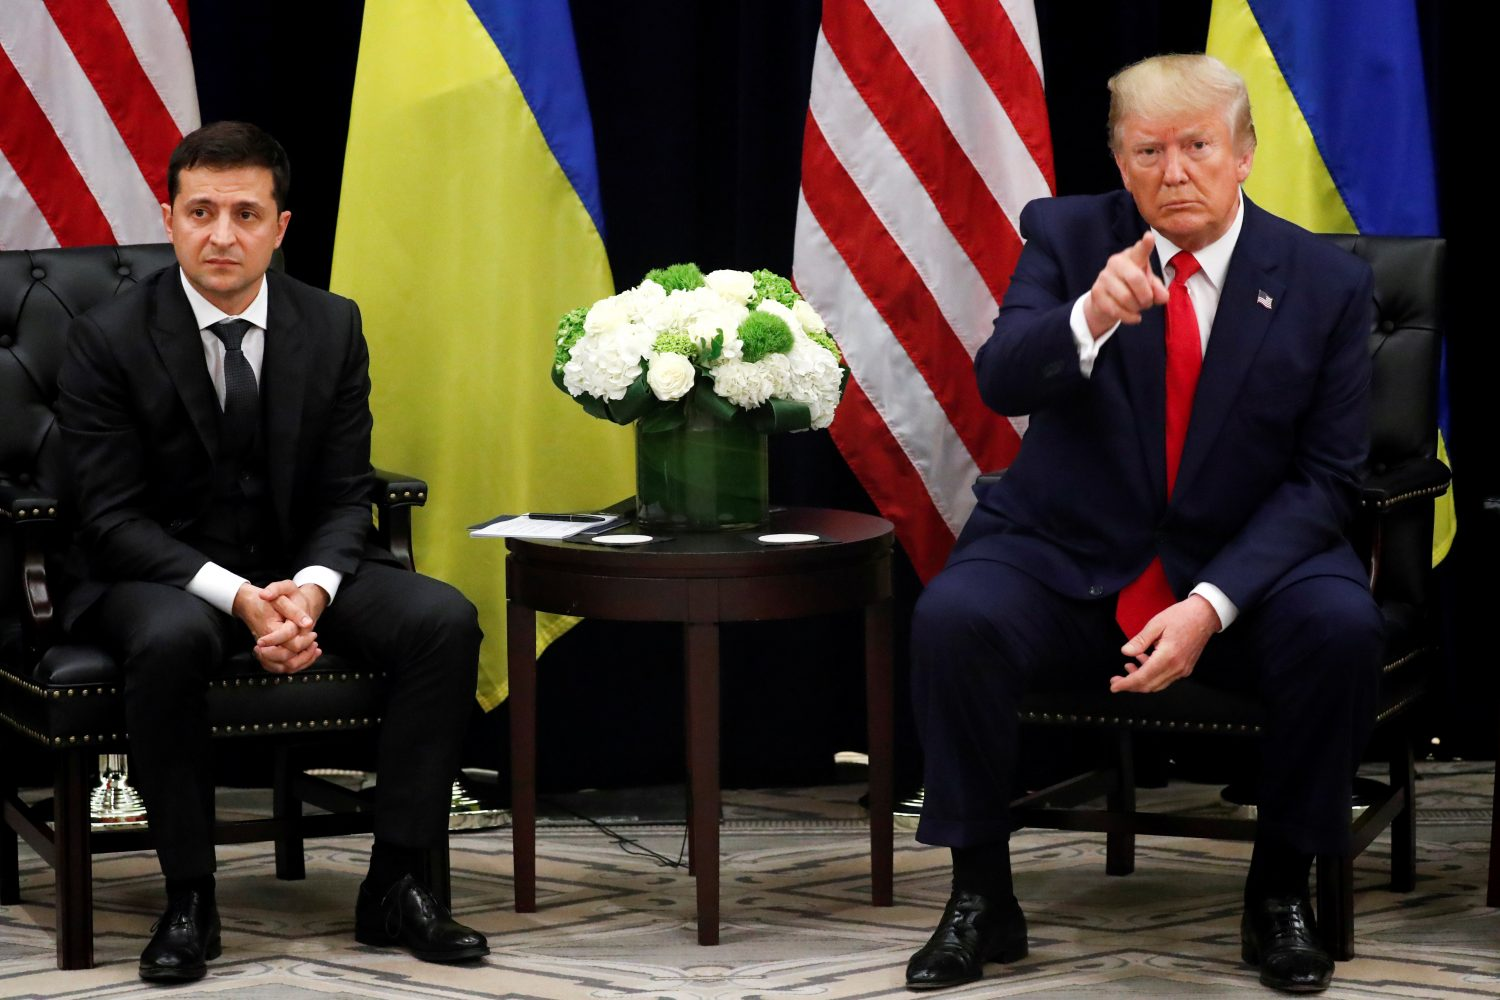 It's counterintuitive but Trump impeachment inquiry may help Ukraine